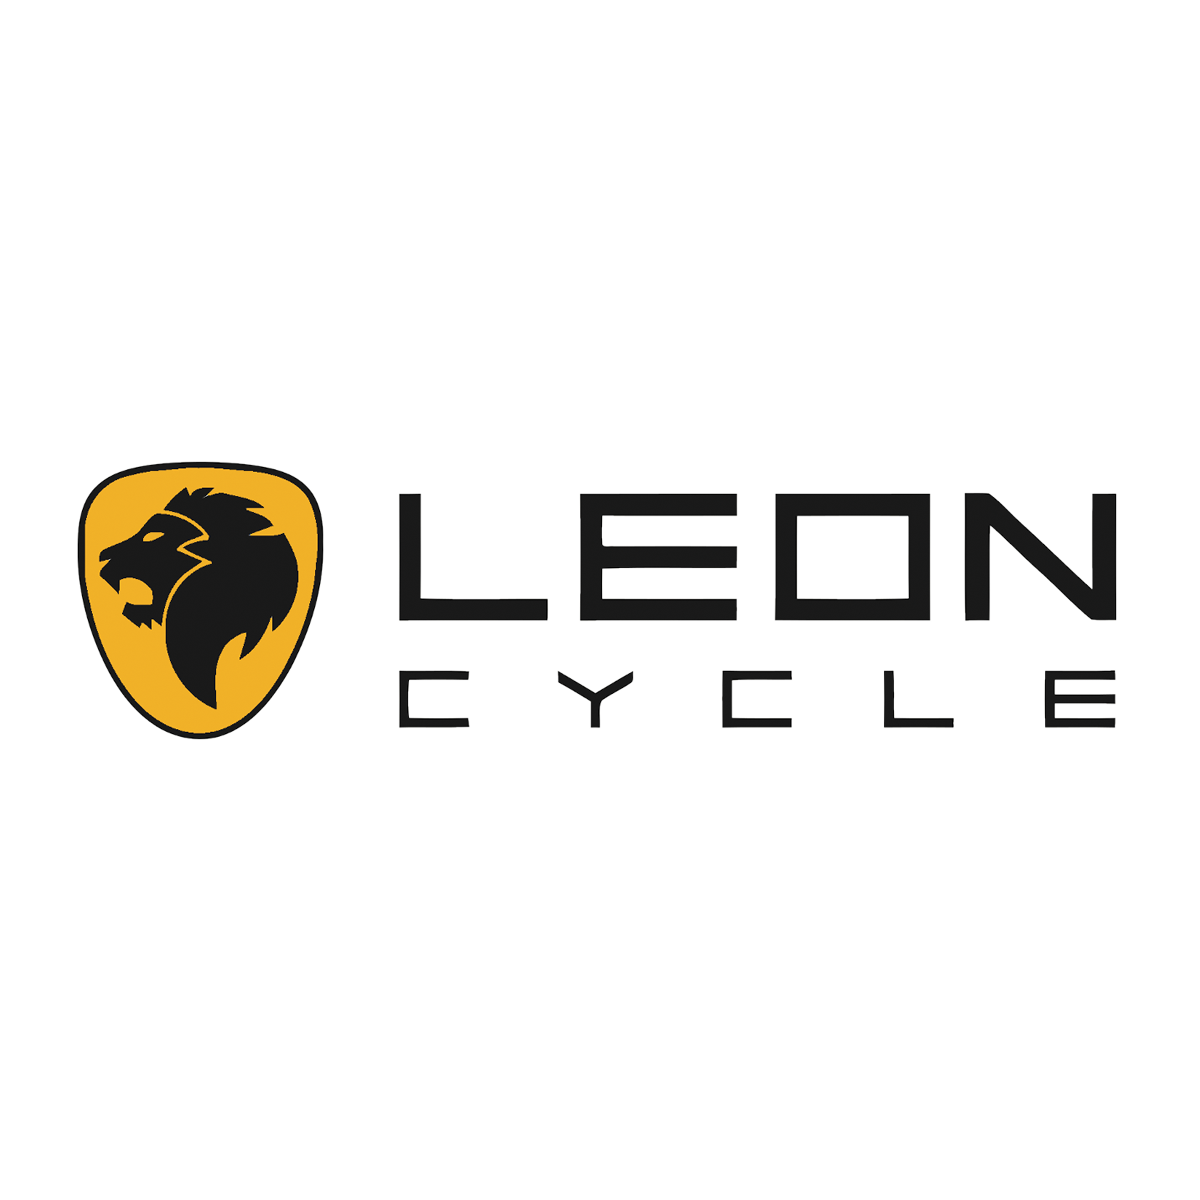 Read leoncycle Reviews